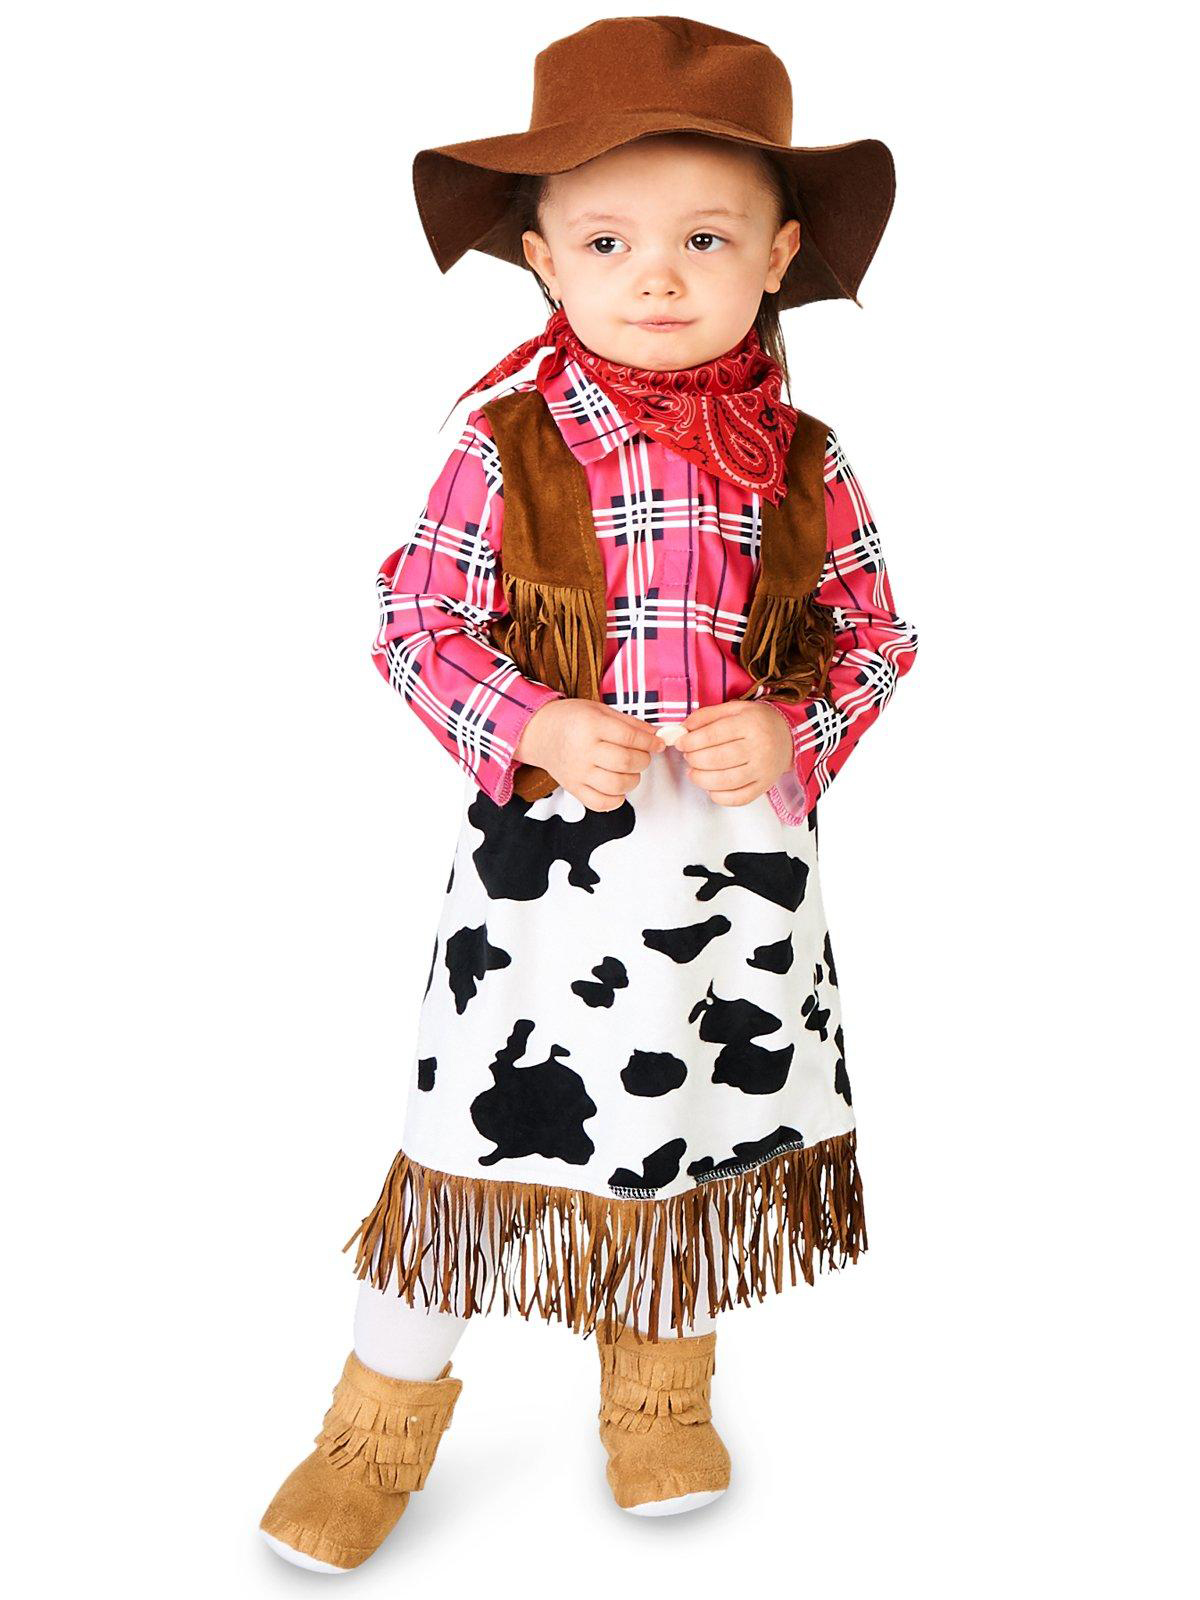 Cowgirl Princess Infant Costume  sc 1 st  Nextag & Baby cow costume | Compare Prices at Nextag